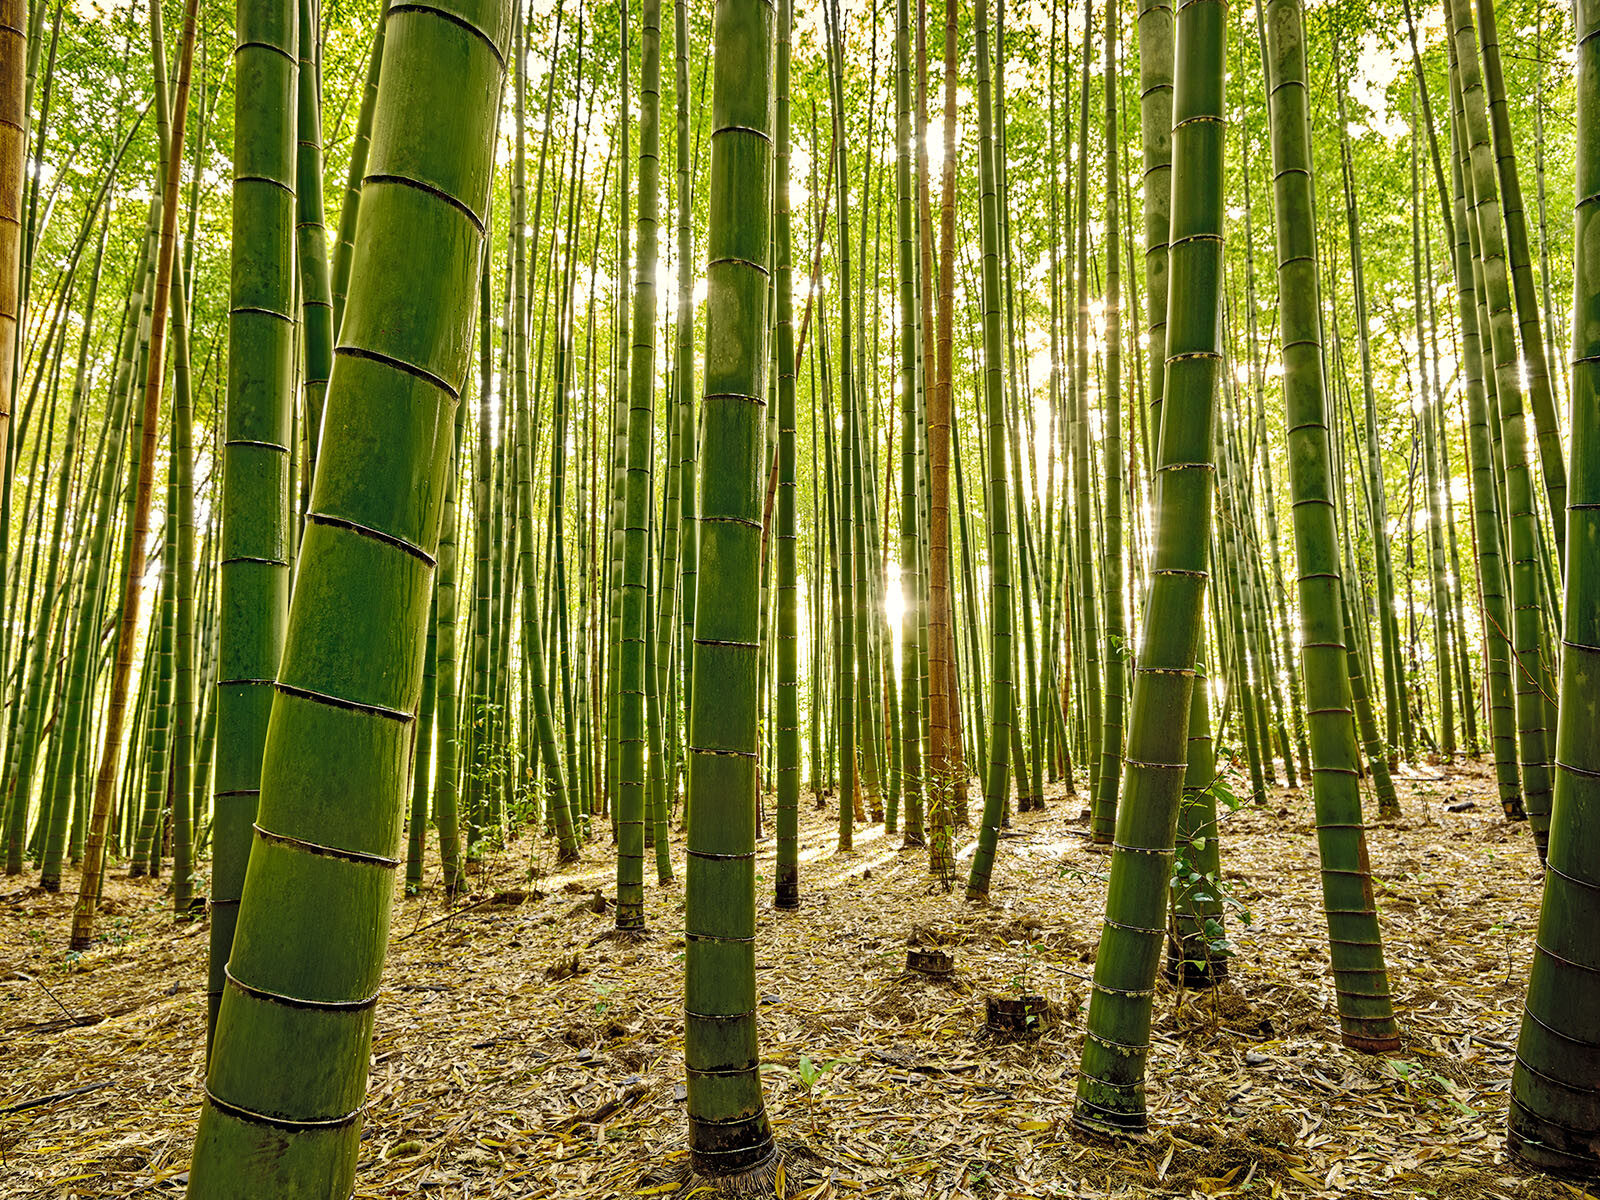 Bamboo IV von André Wagner